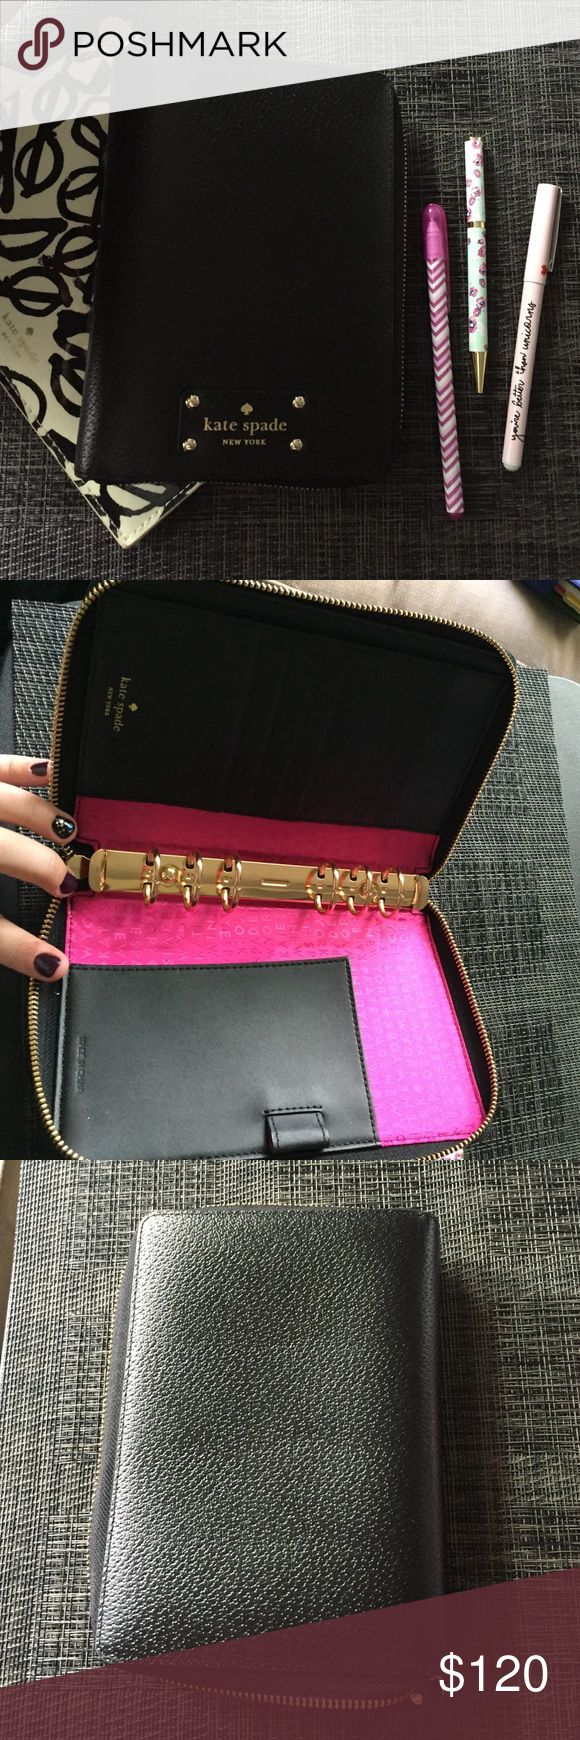 Kate Spade Wellesley zip planner agenda Barely used 2016 Kate spade personal Wellesley planner. Excellent condition. Used maybe 2 months. Bottom rings have very slight gap, see picture. I bought it this way and does not affect use. She is ready for a new home! No trades! kate spade Accessories